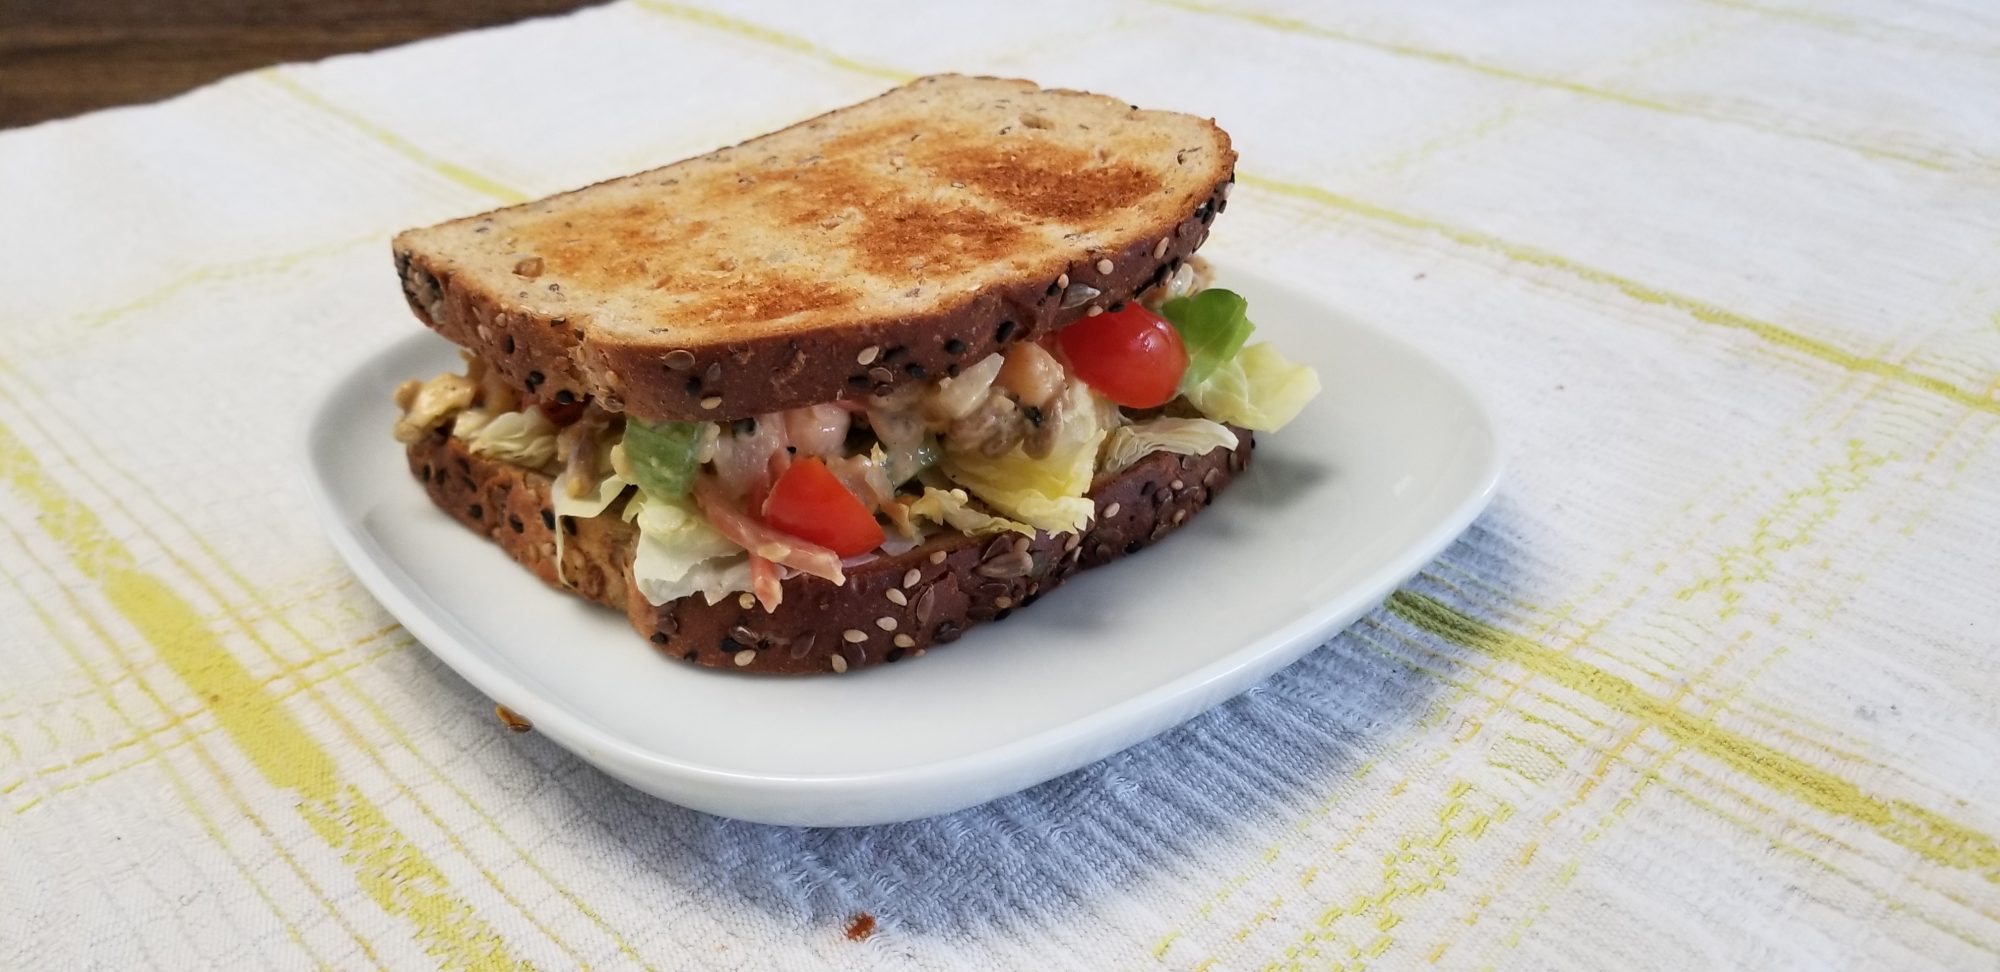 finished vegan tuna sandwich